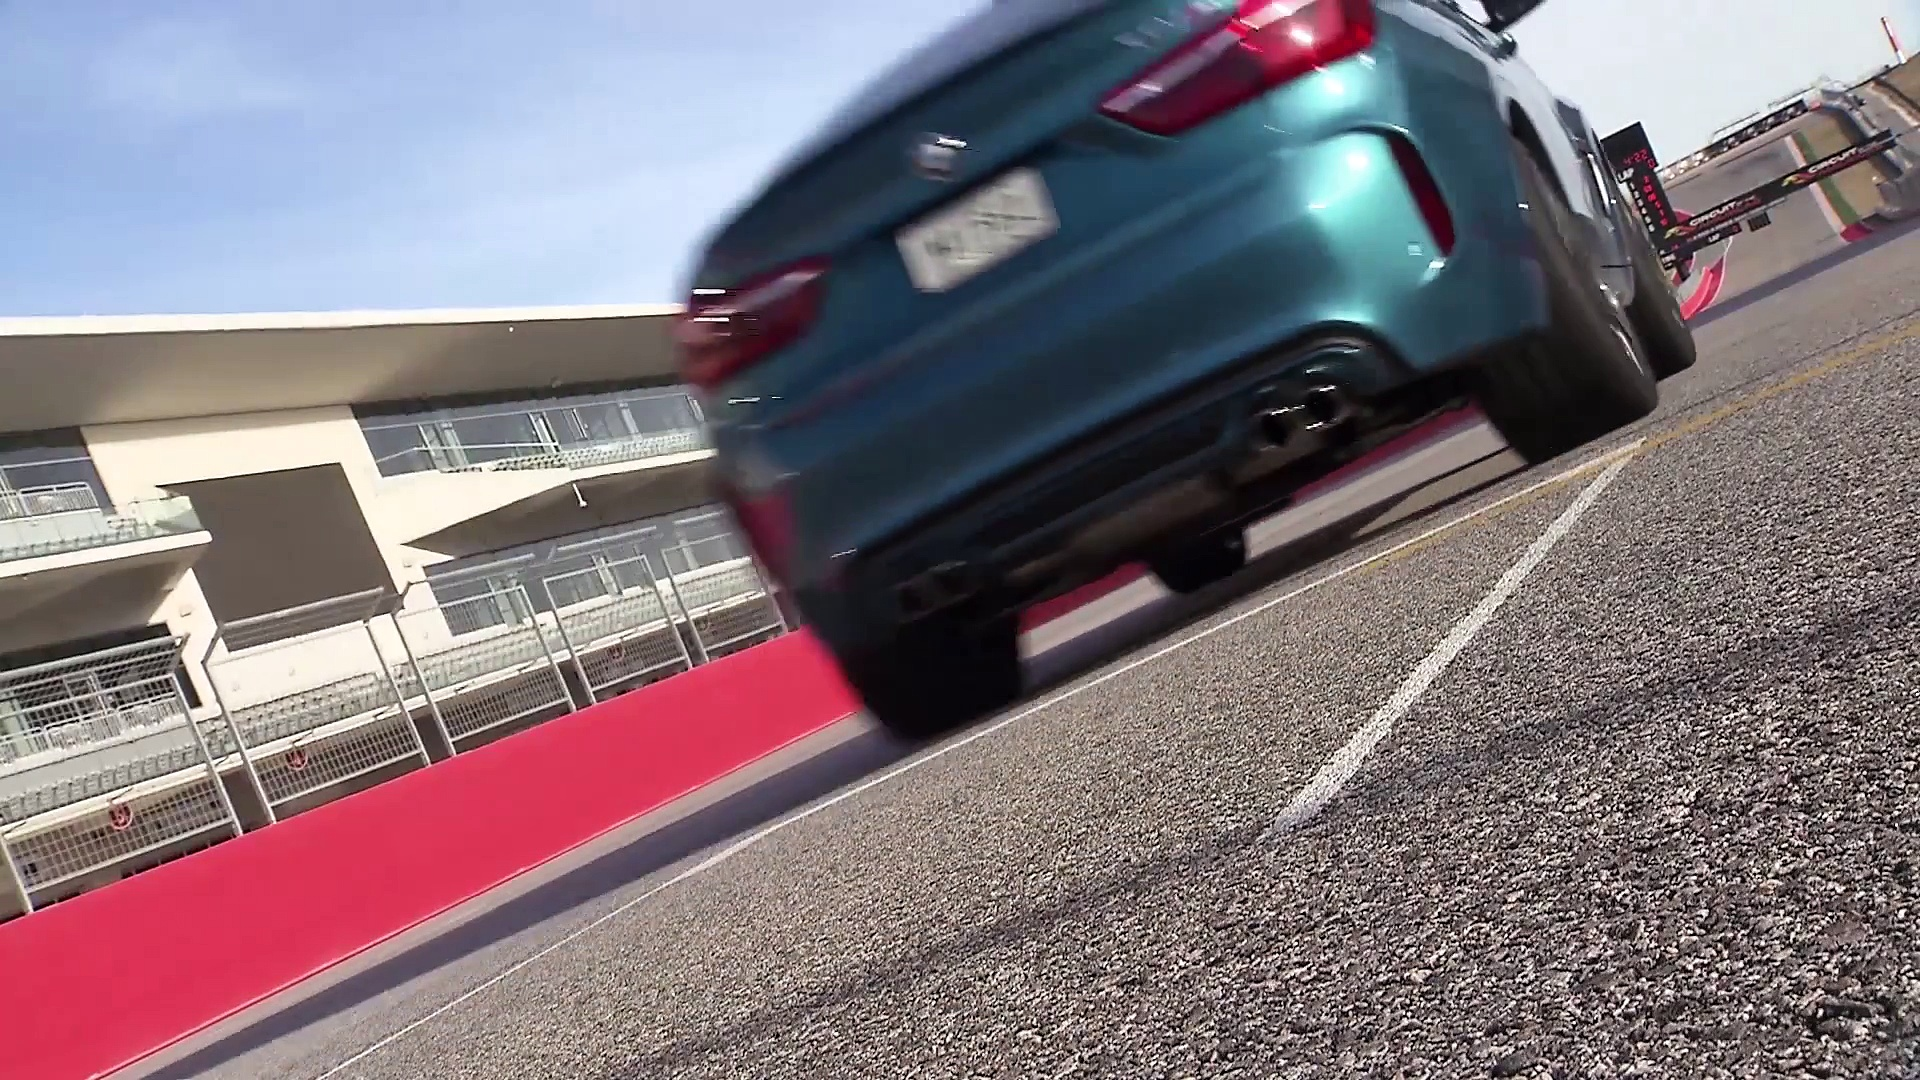 The new BMW X6 M Driving on the race track in Austin Trailer